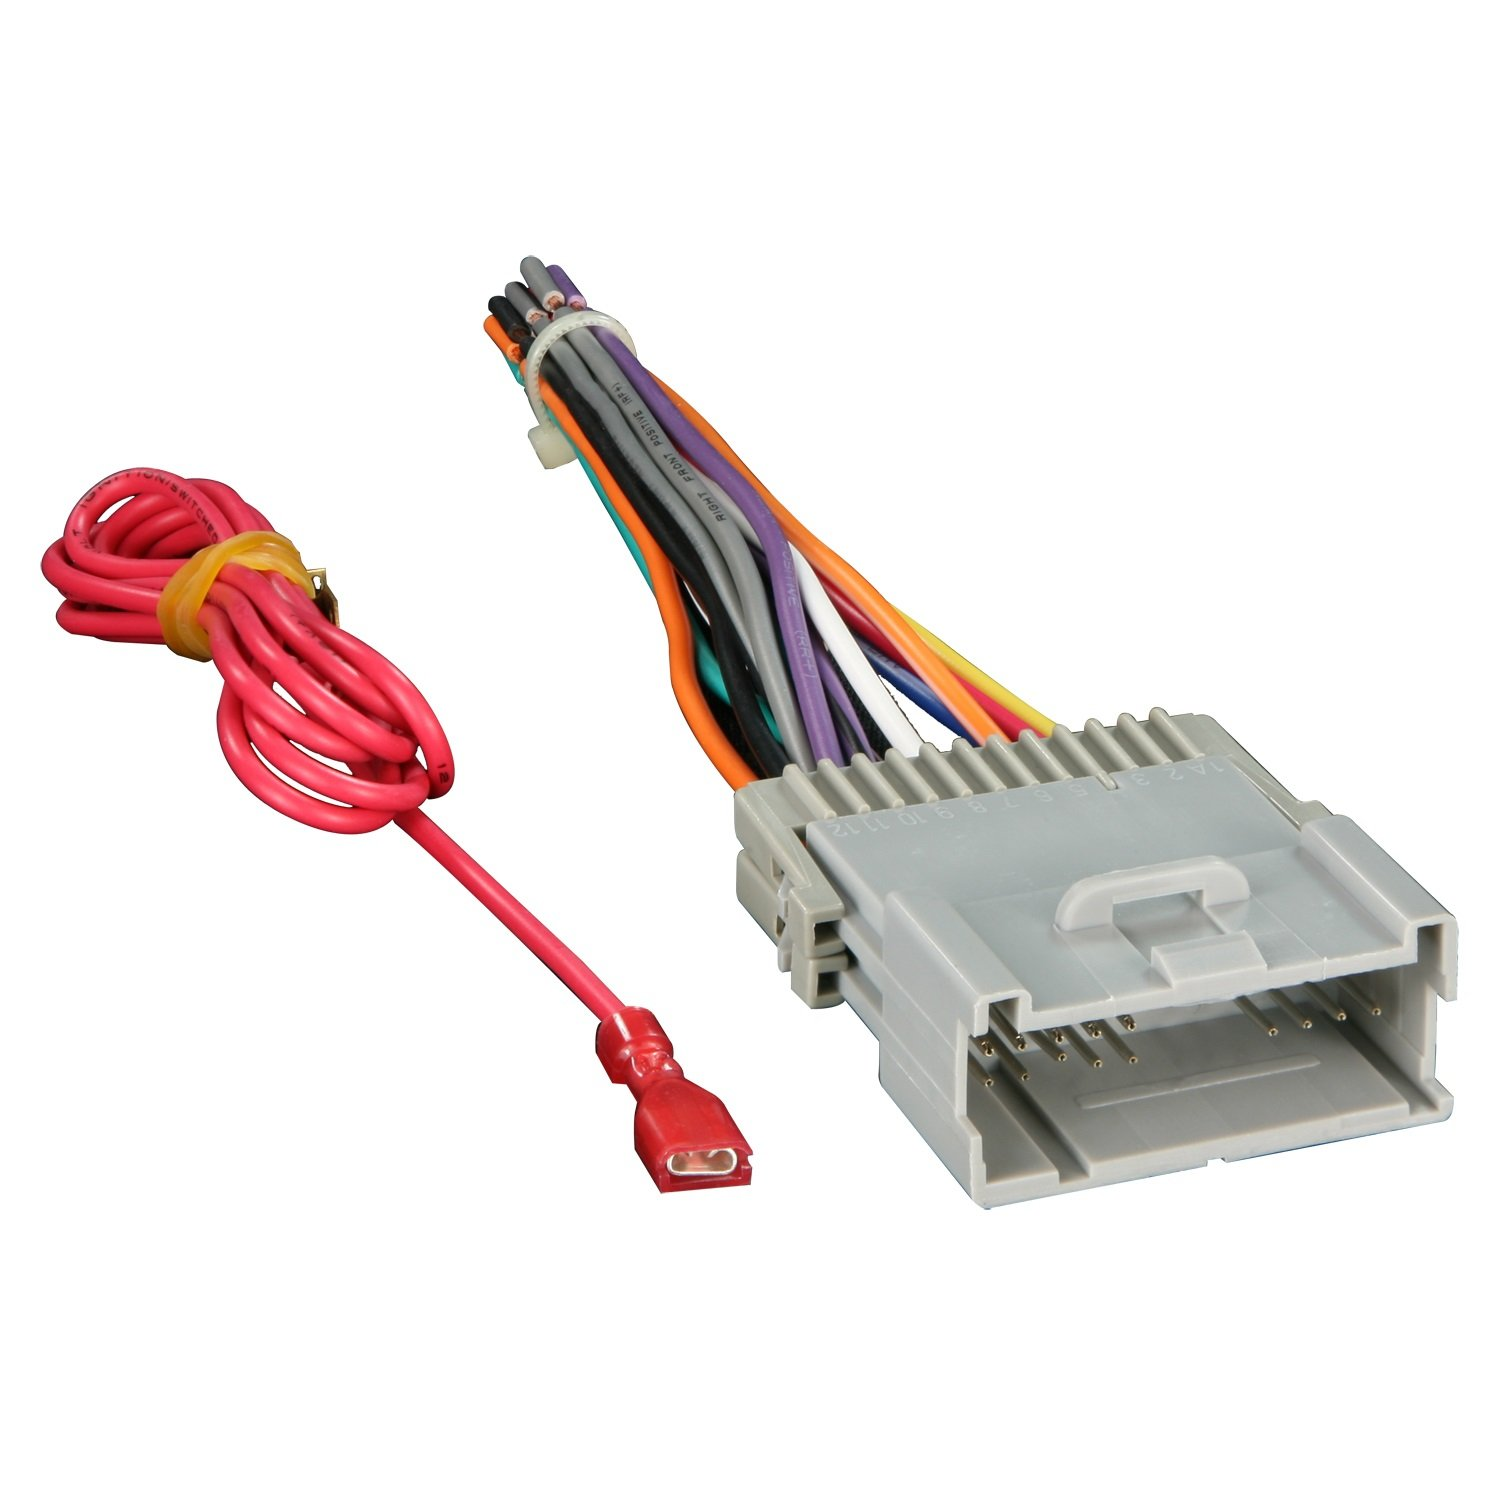 61eewxp9orL._SL1500_ amazon com metra 70 2003 radio wiring harness for gm 98 08 snap on wire harness adapter at gsmportal.co